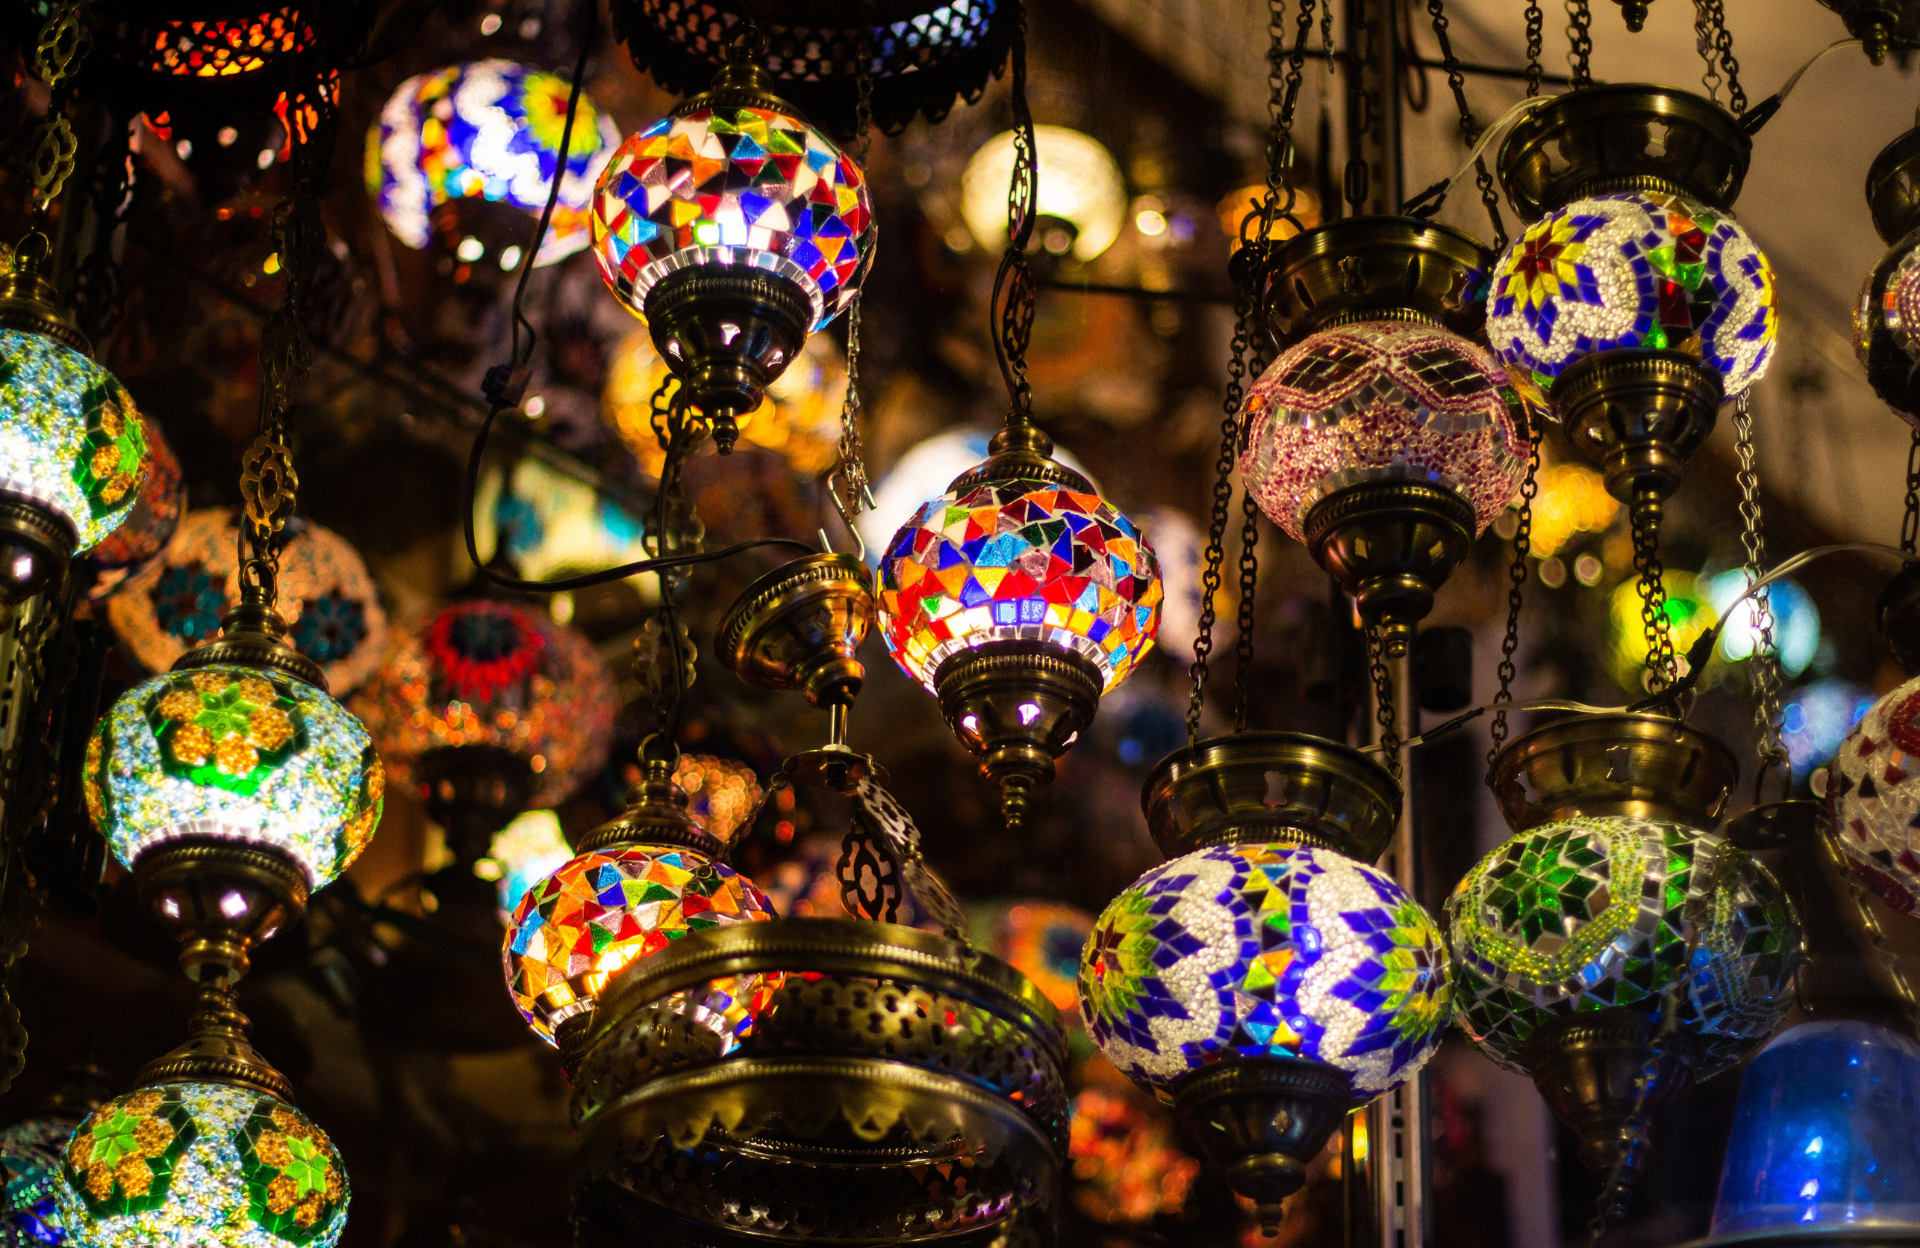 Colourful hanging Moroccan lamp display